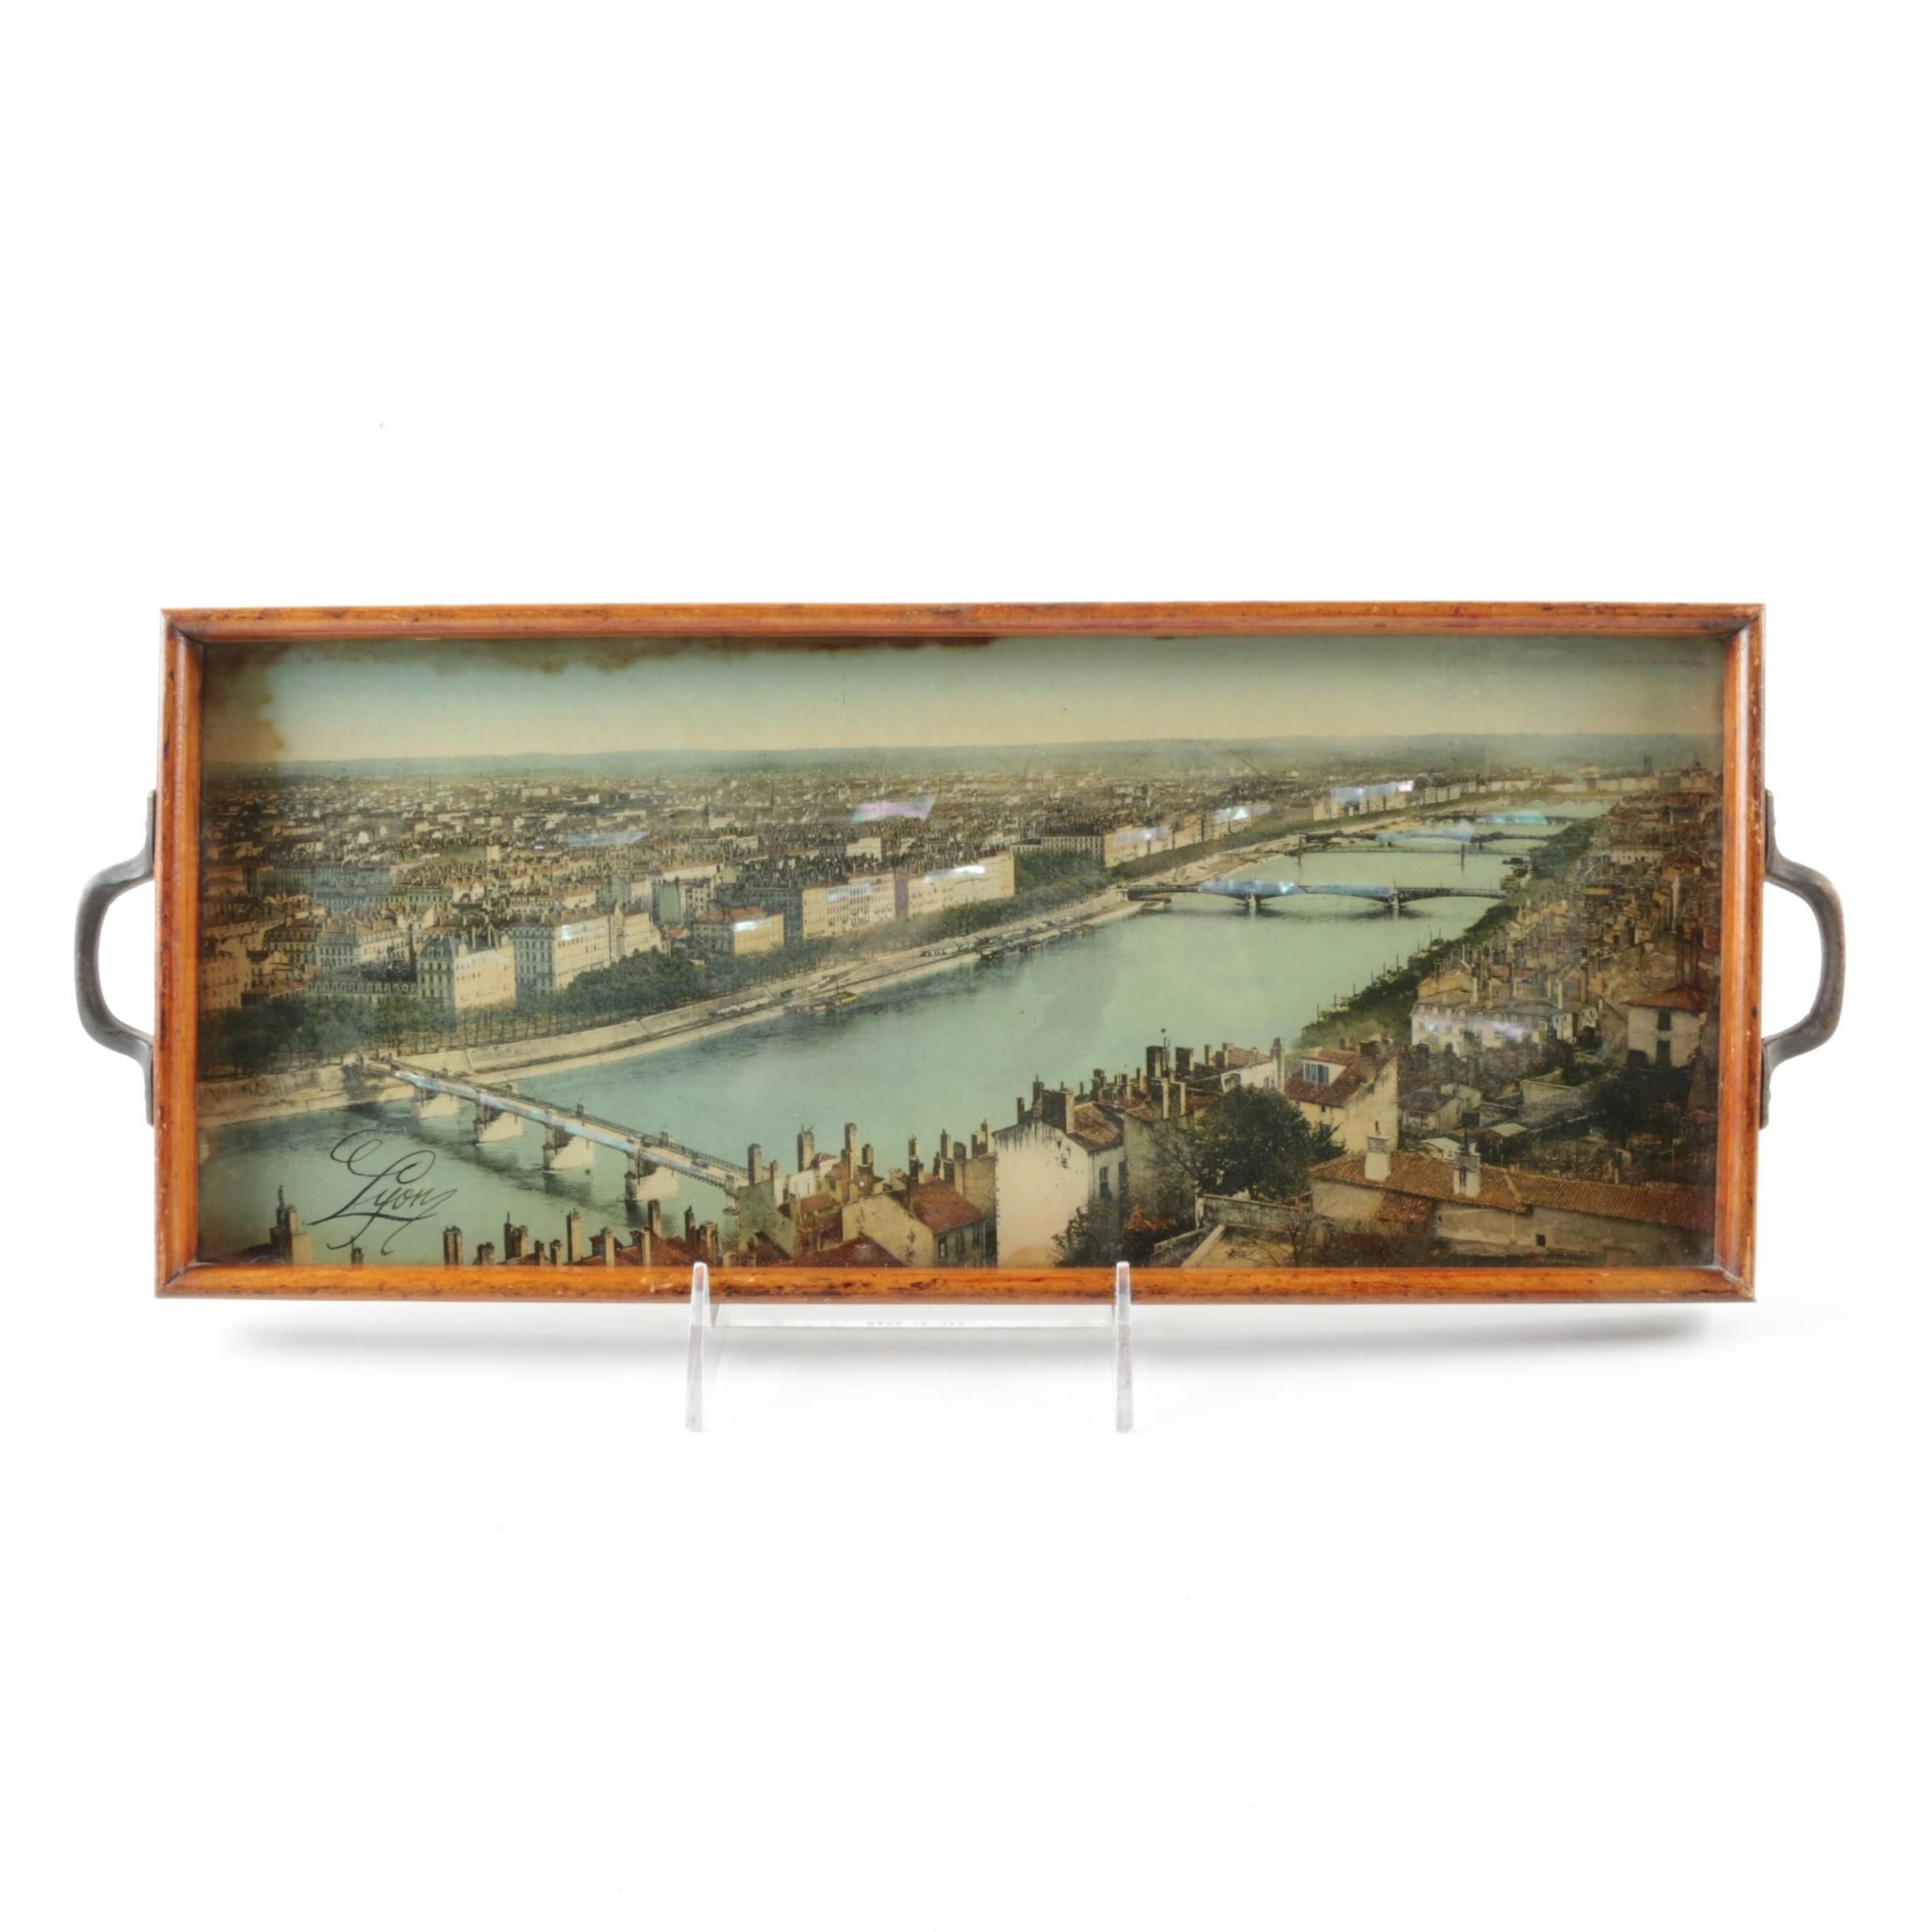 Vintage Serving Tray with Image of Lyon, France